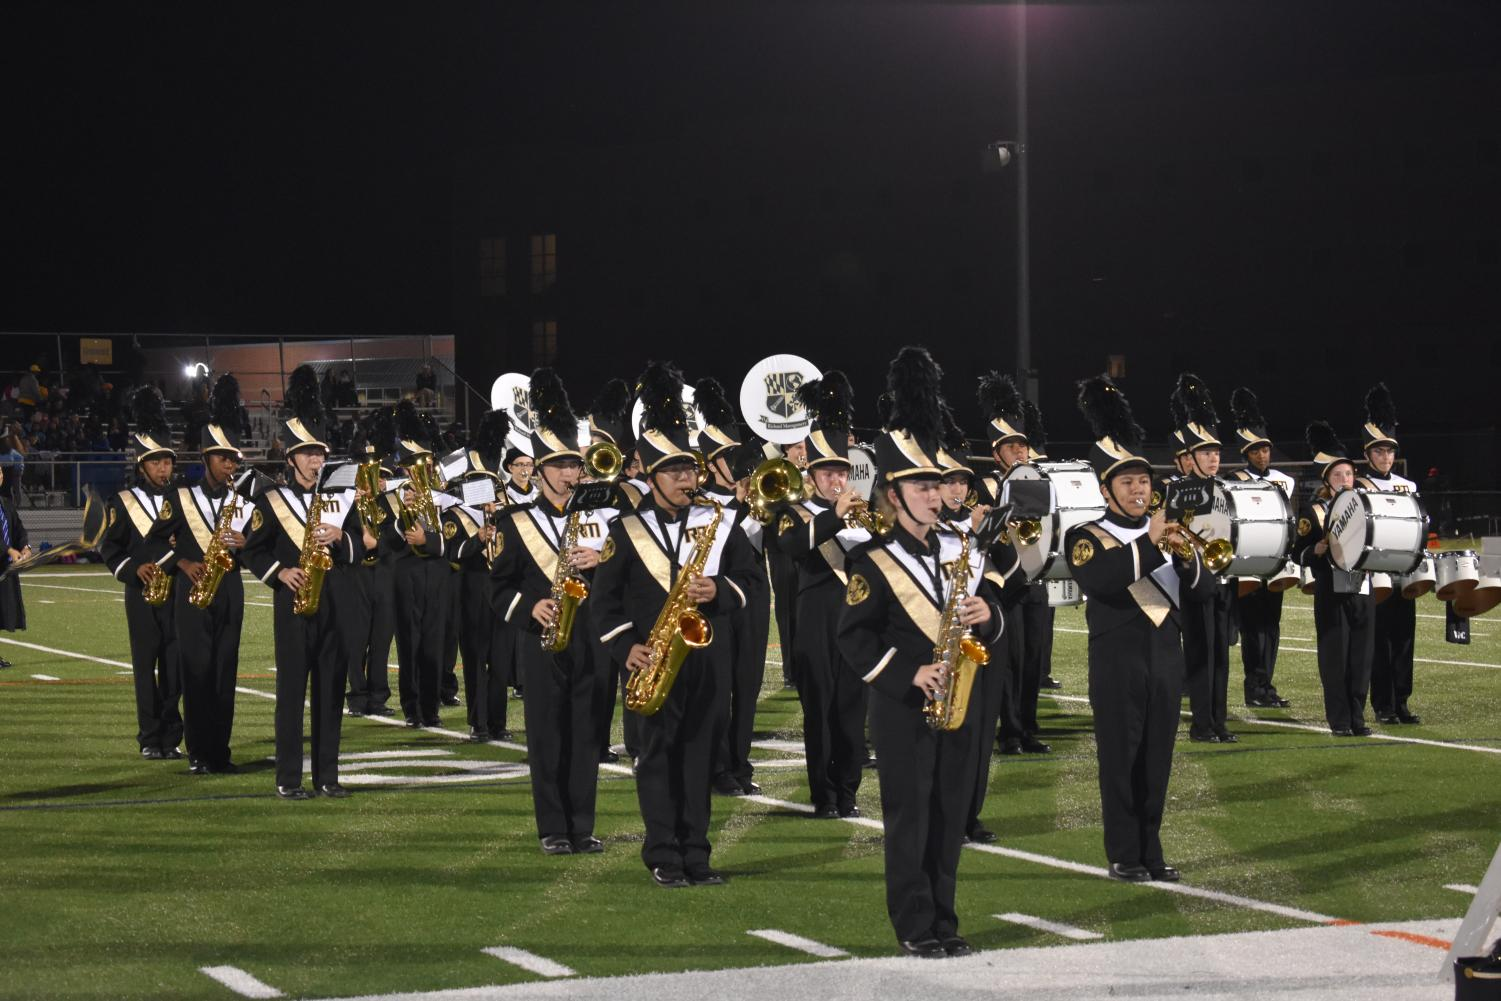 Marching band performs at halftime during the homecoming game.